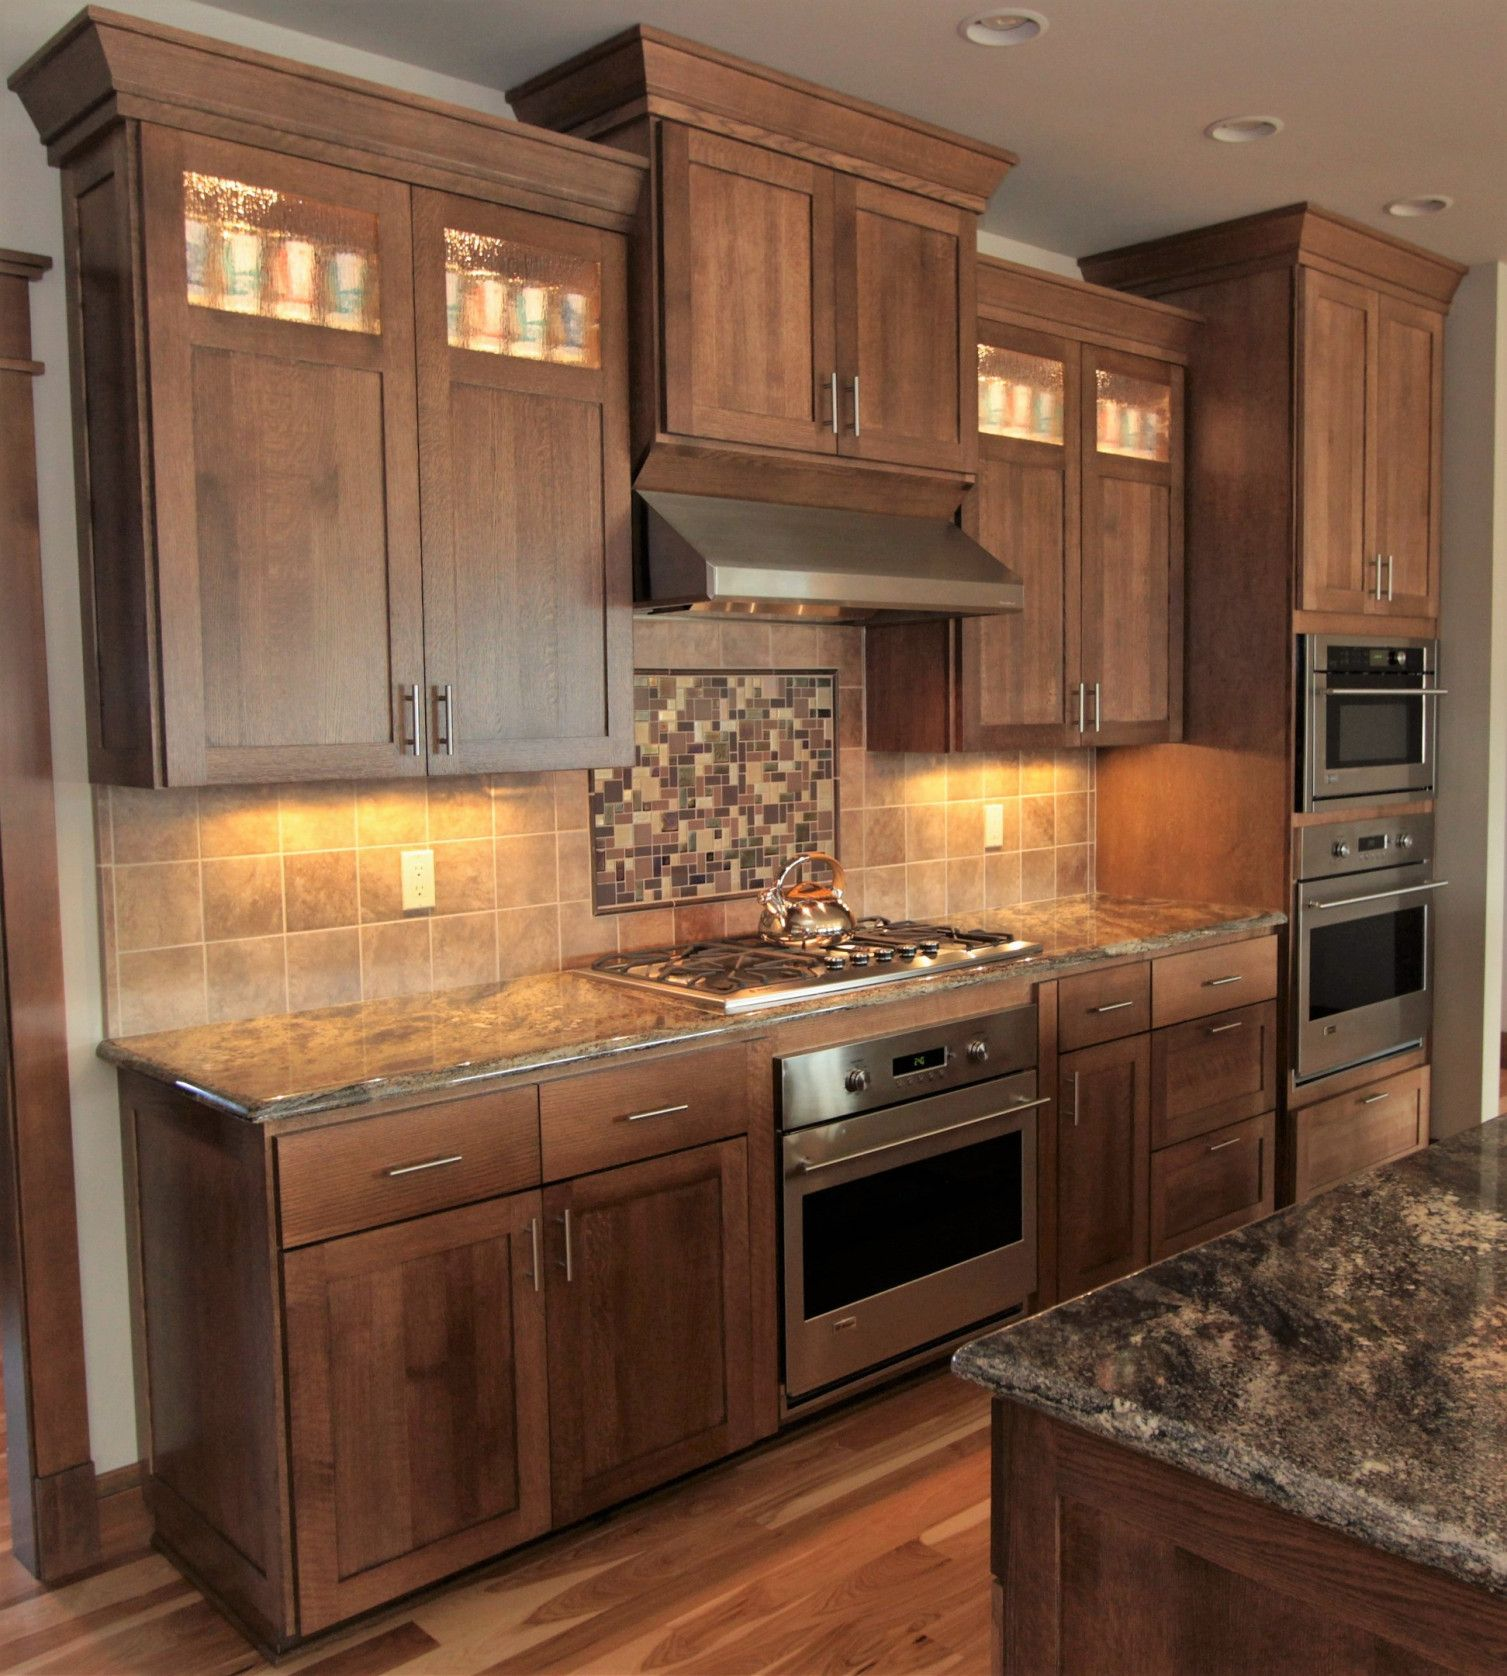 Pin By Rose Rocker On Kitchen Designs Country Style Kitchen Rustic Kitchen Staggered Kitchen Cabinets